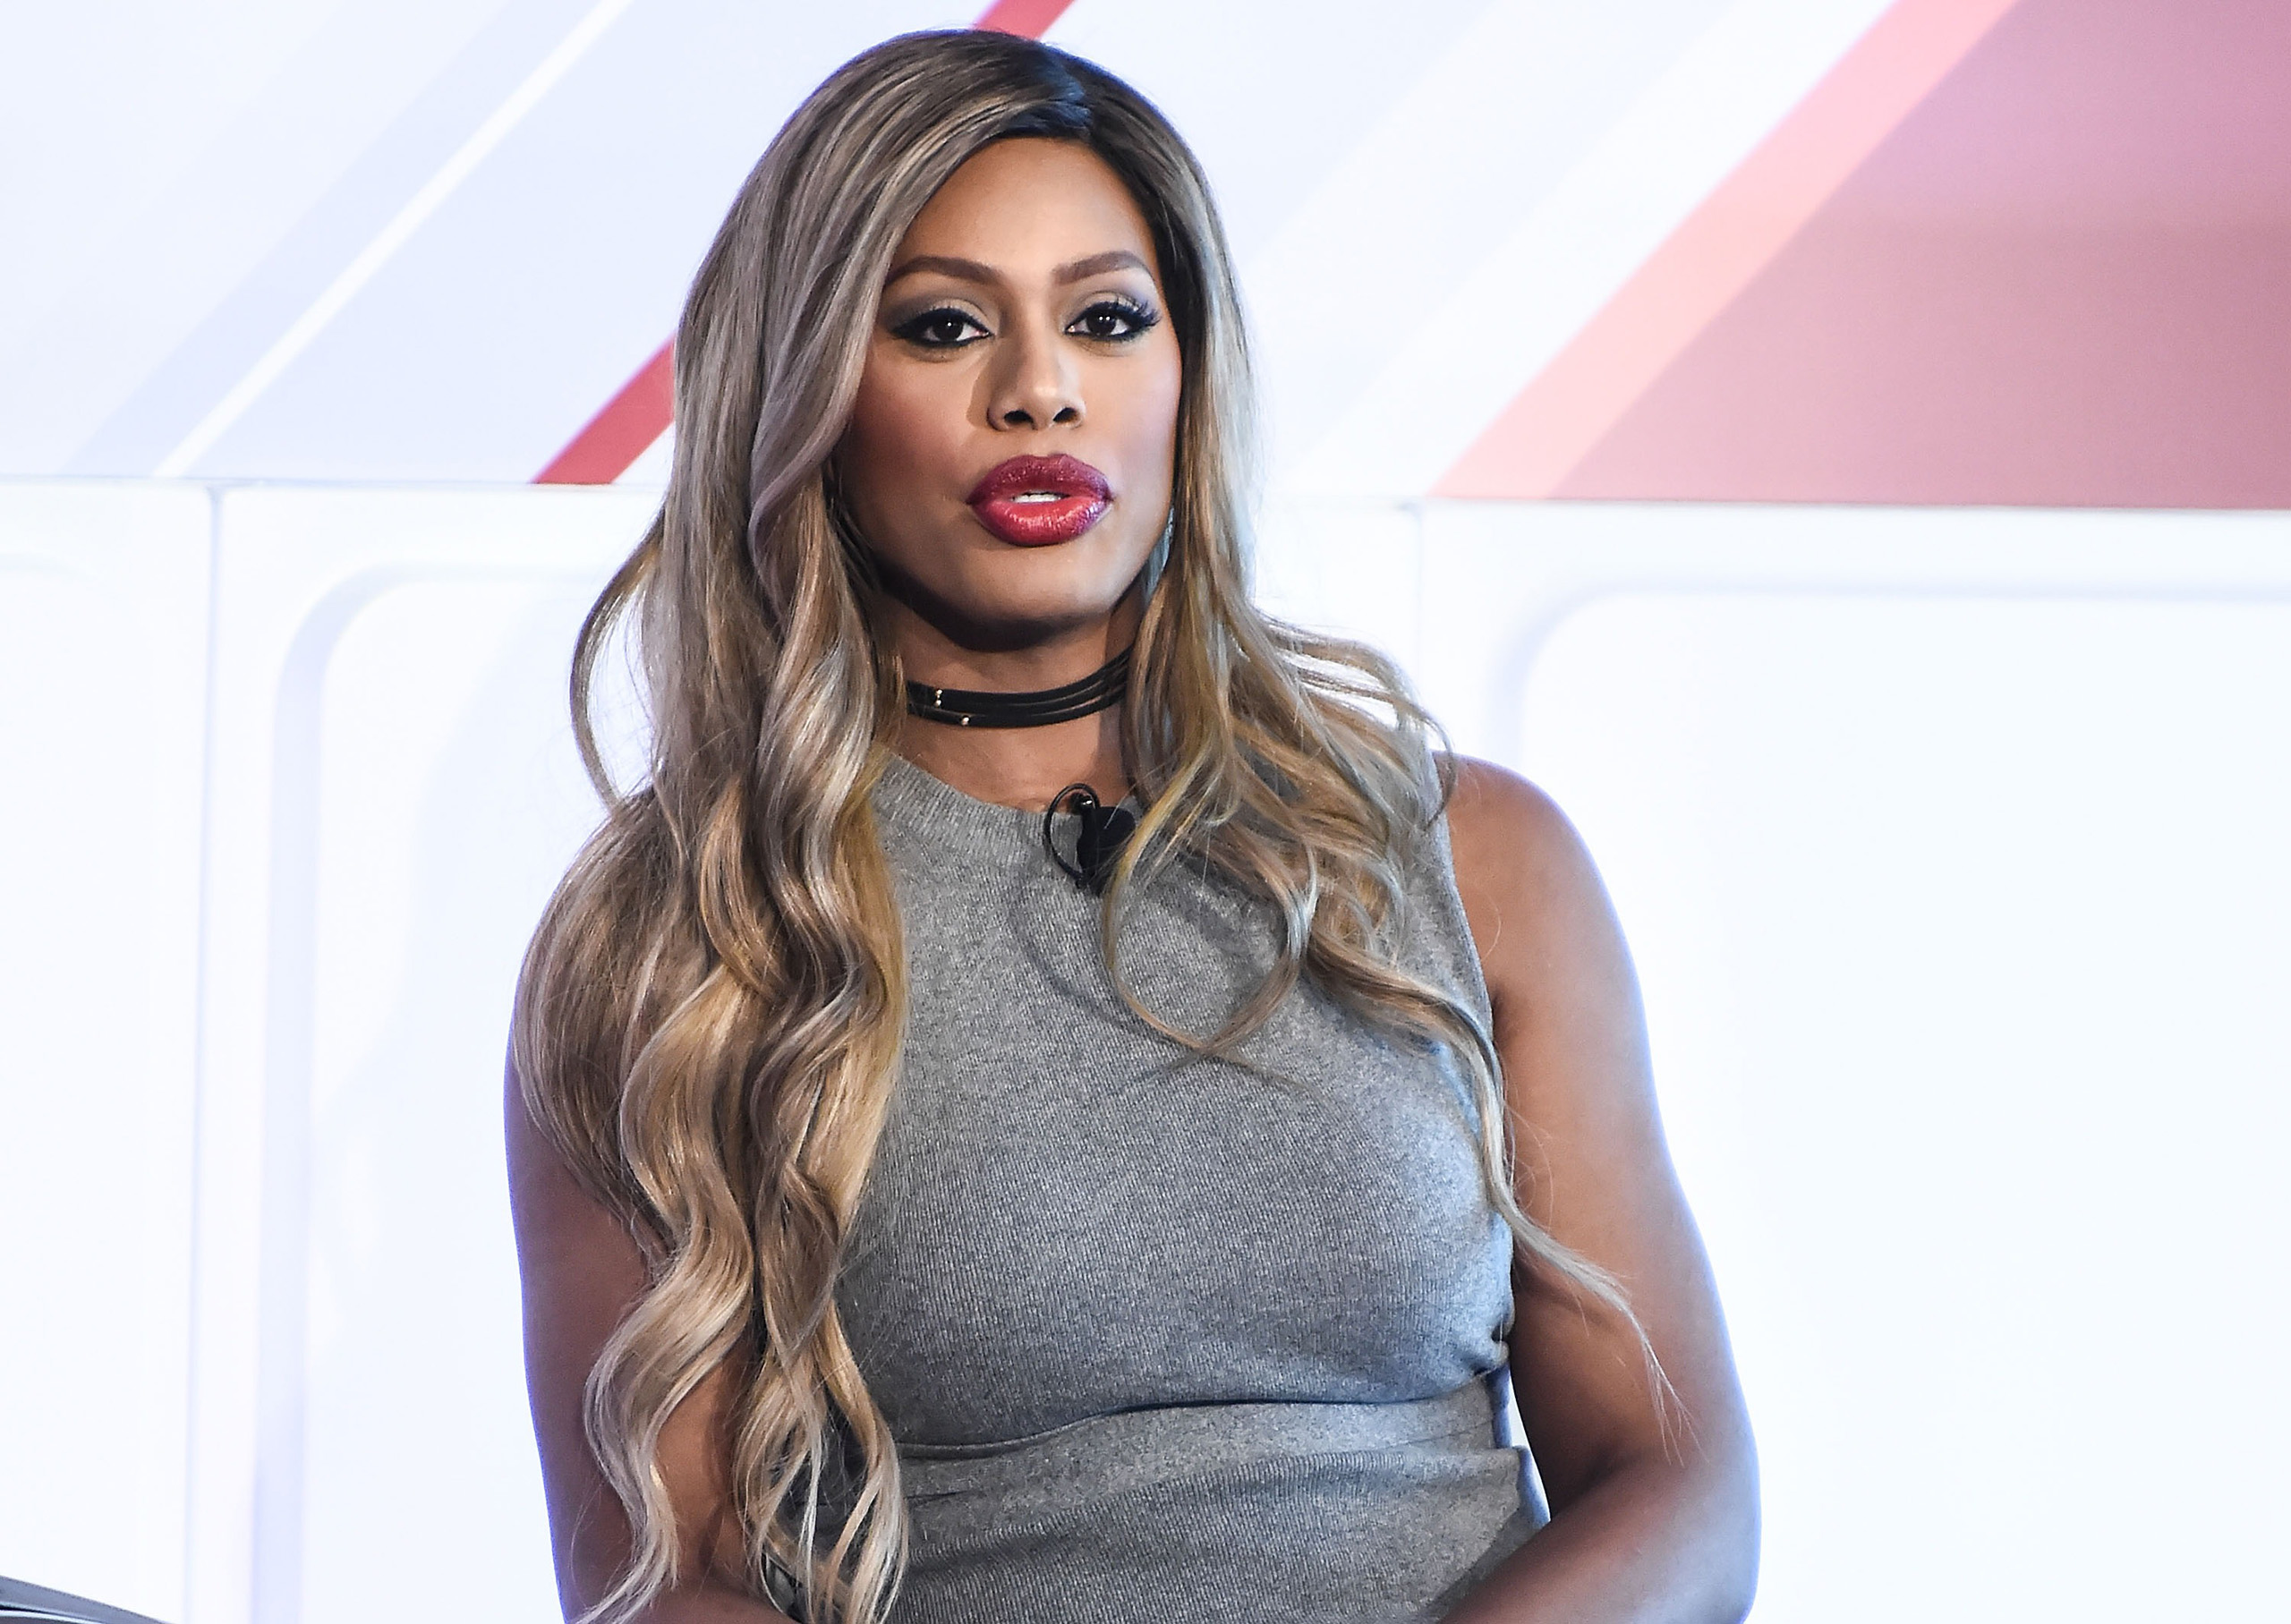 Laverne Cox speaks onstage during the 2016 Forbes Women's Summit in New York on May 12, 2016.